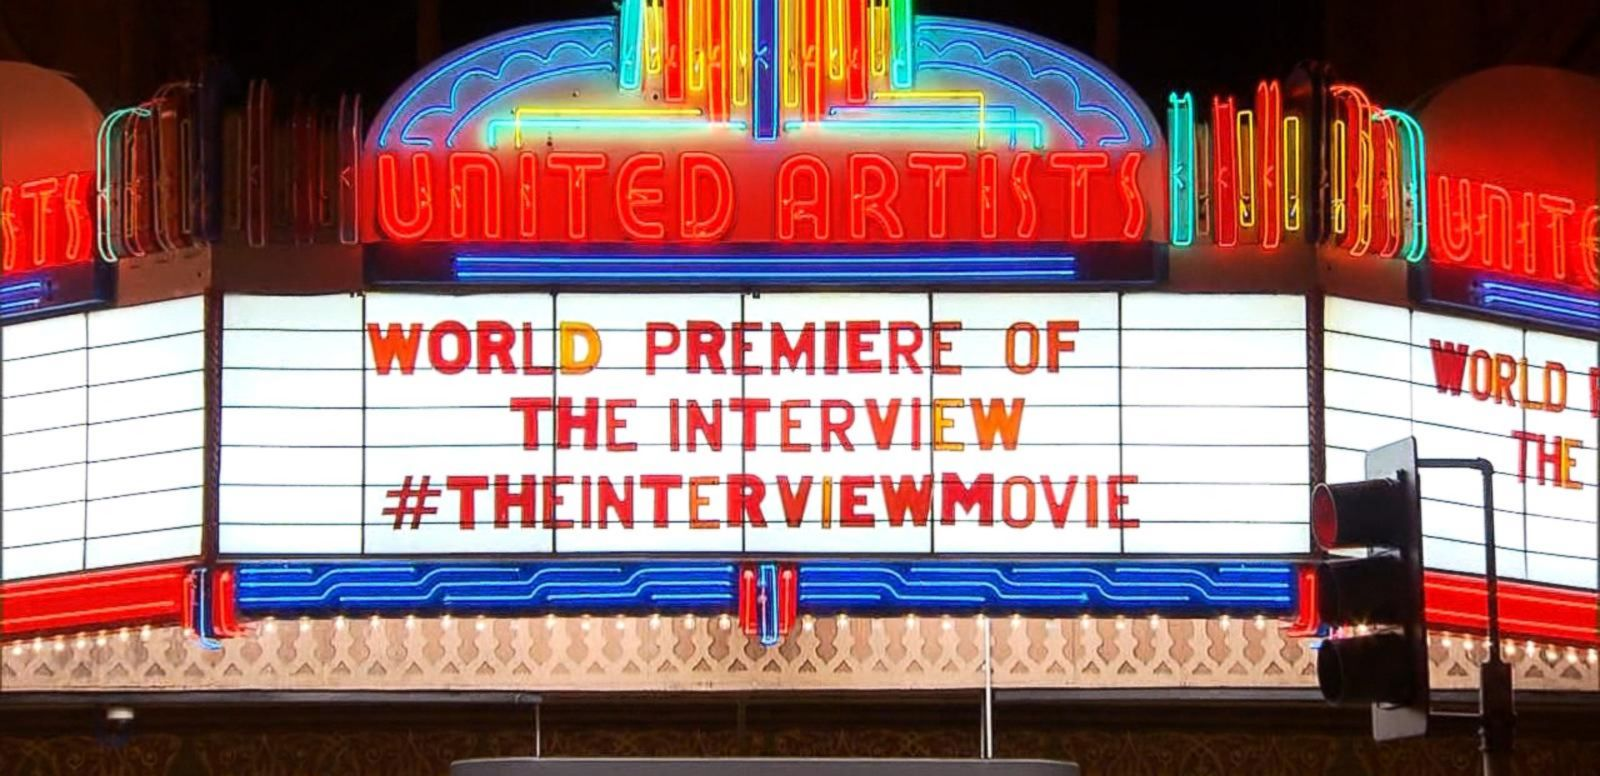 VIDEO: Sony's Decision to Pull 'The Interview' Questioned